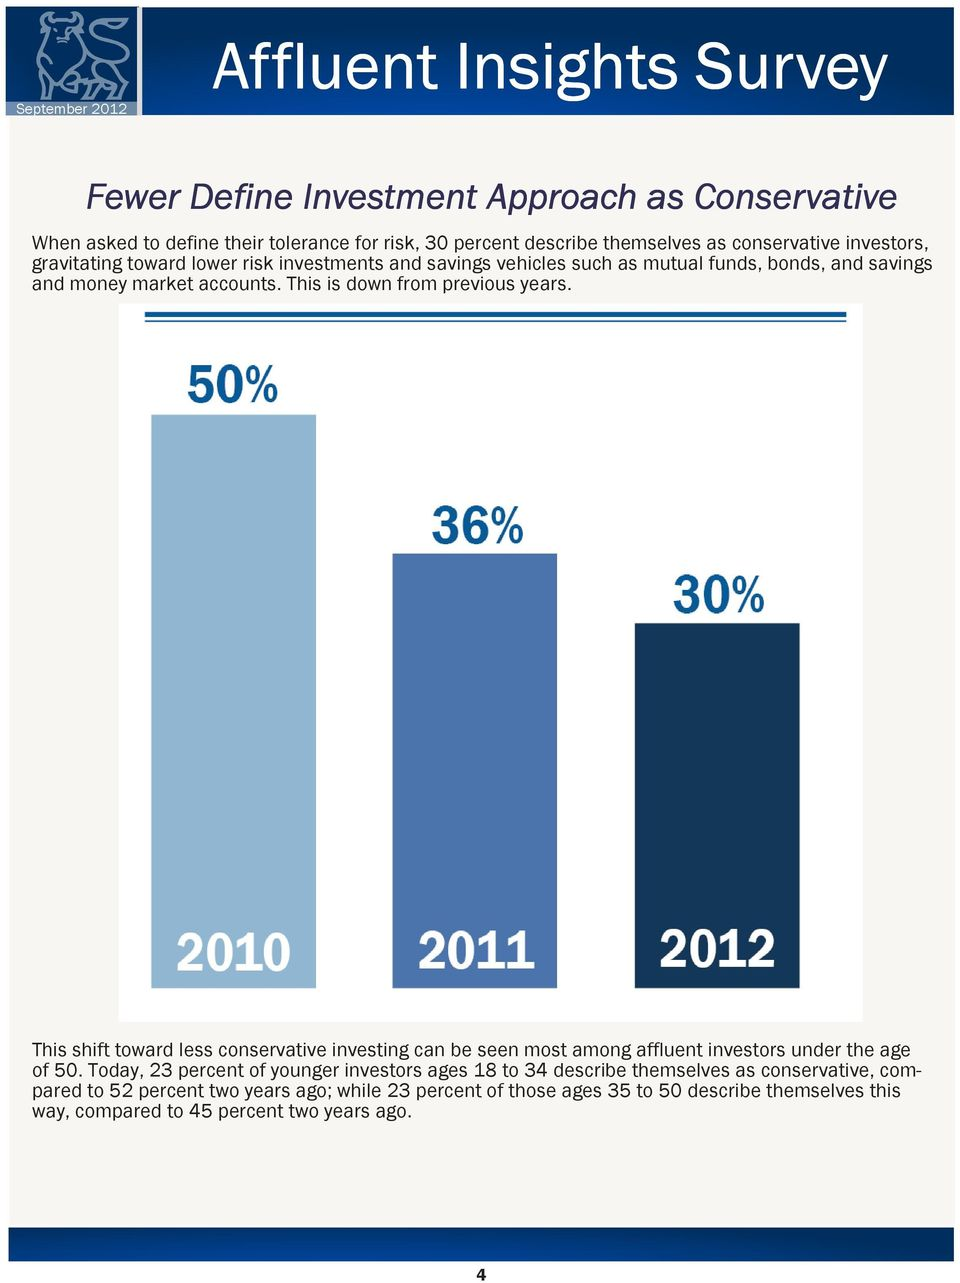 This shift toward less conservative investing can be seen most among affluent investors under the age of 50.